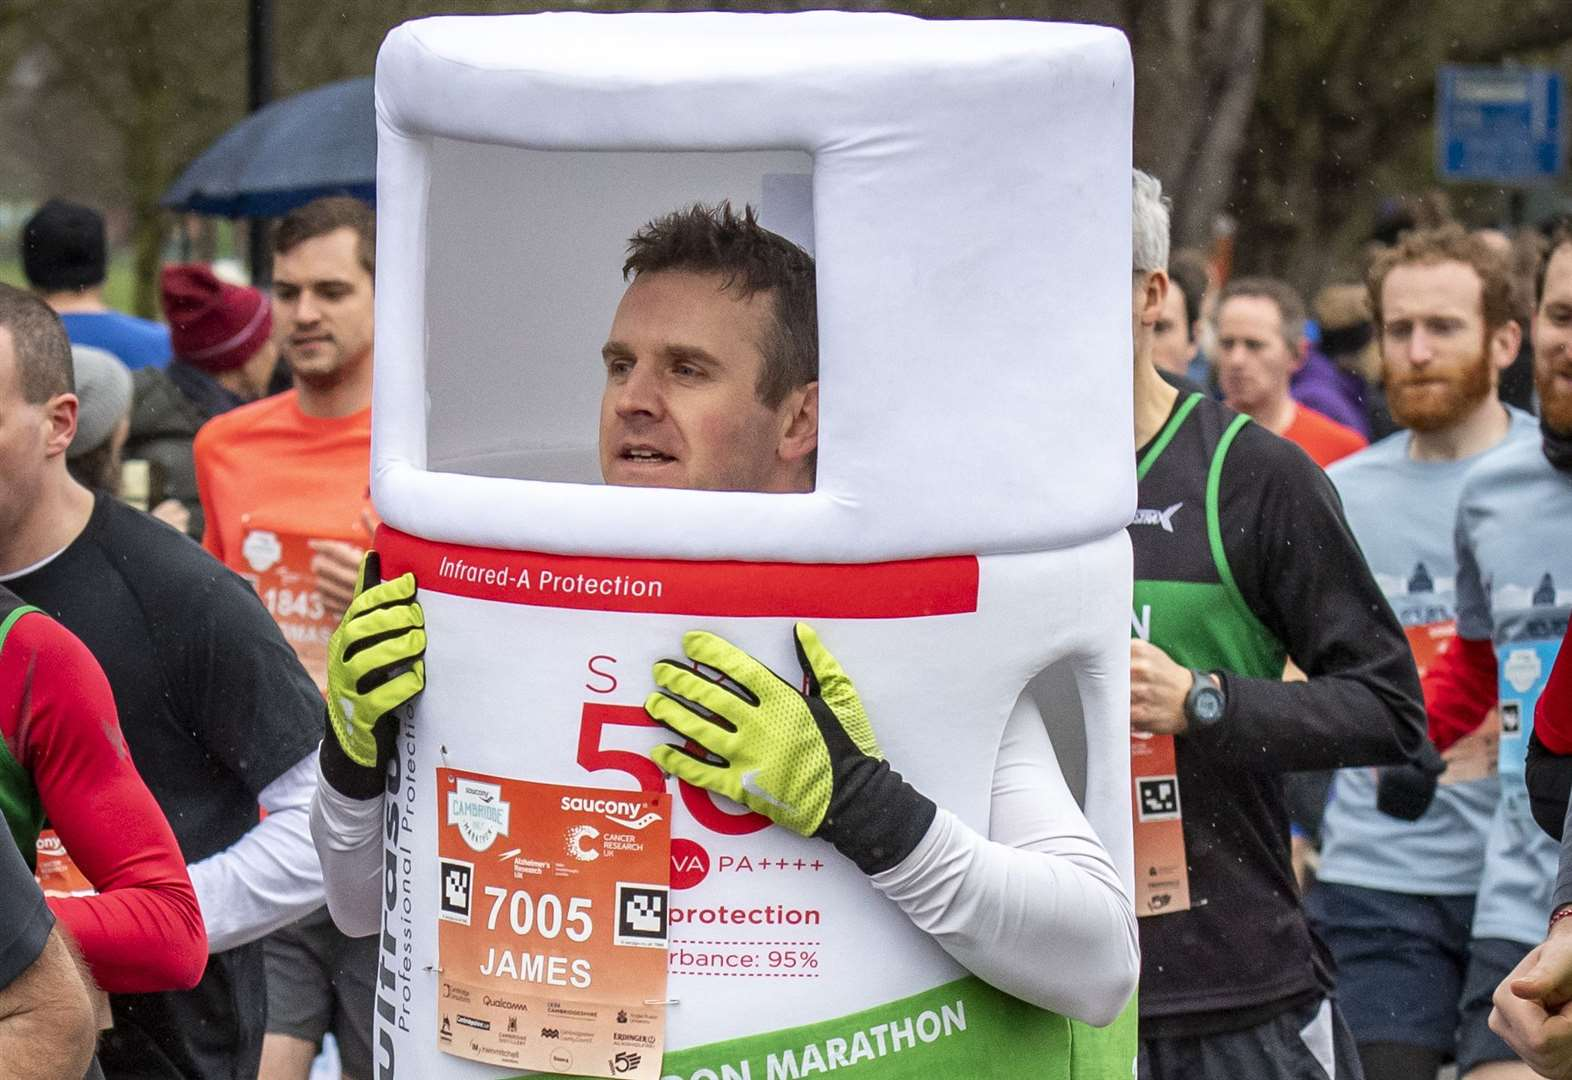 Skin cancer survivor to run marathon dressed as sun lotion for charity